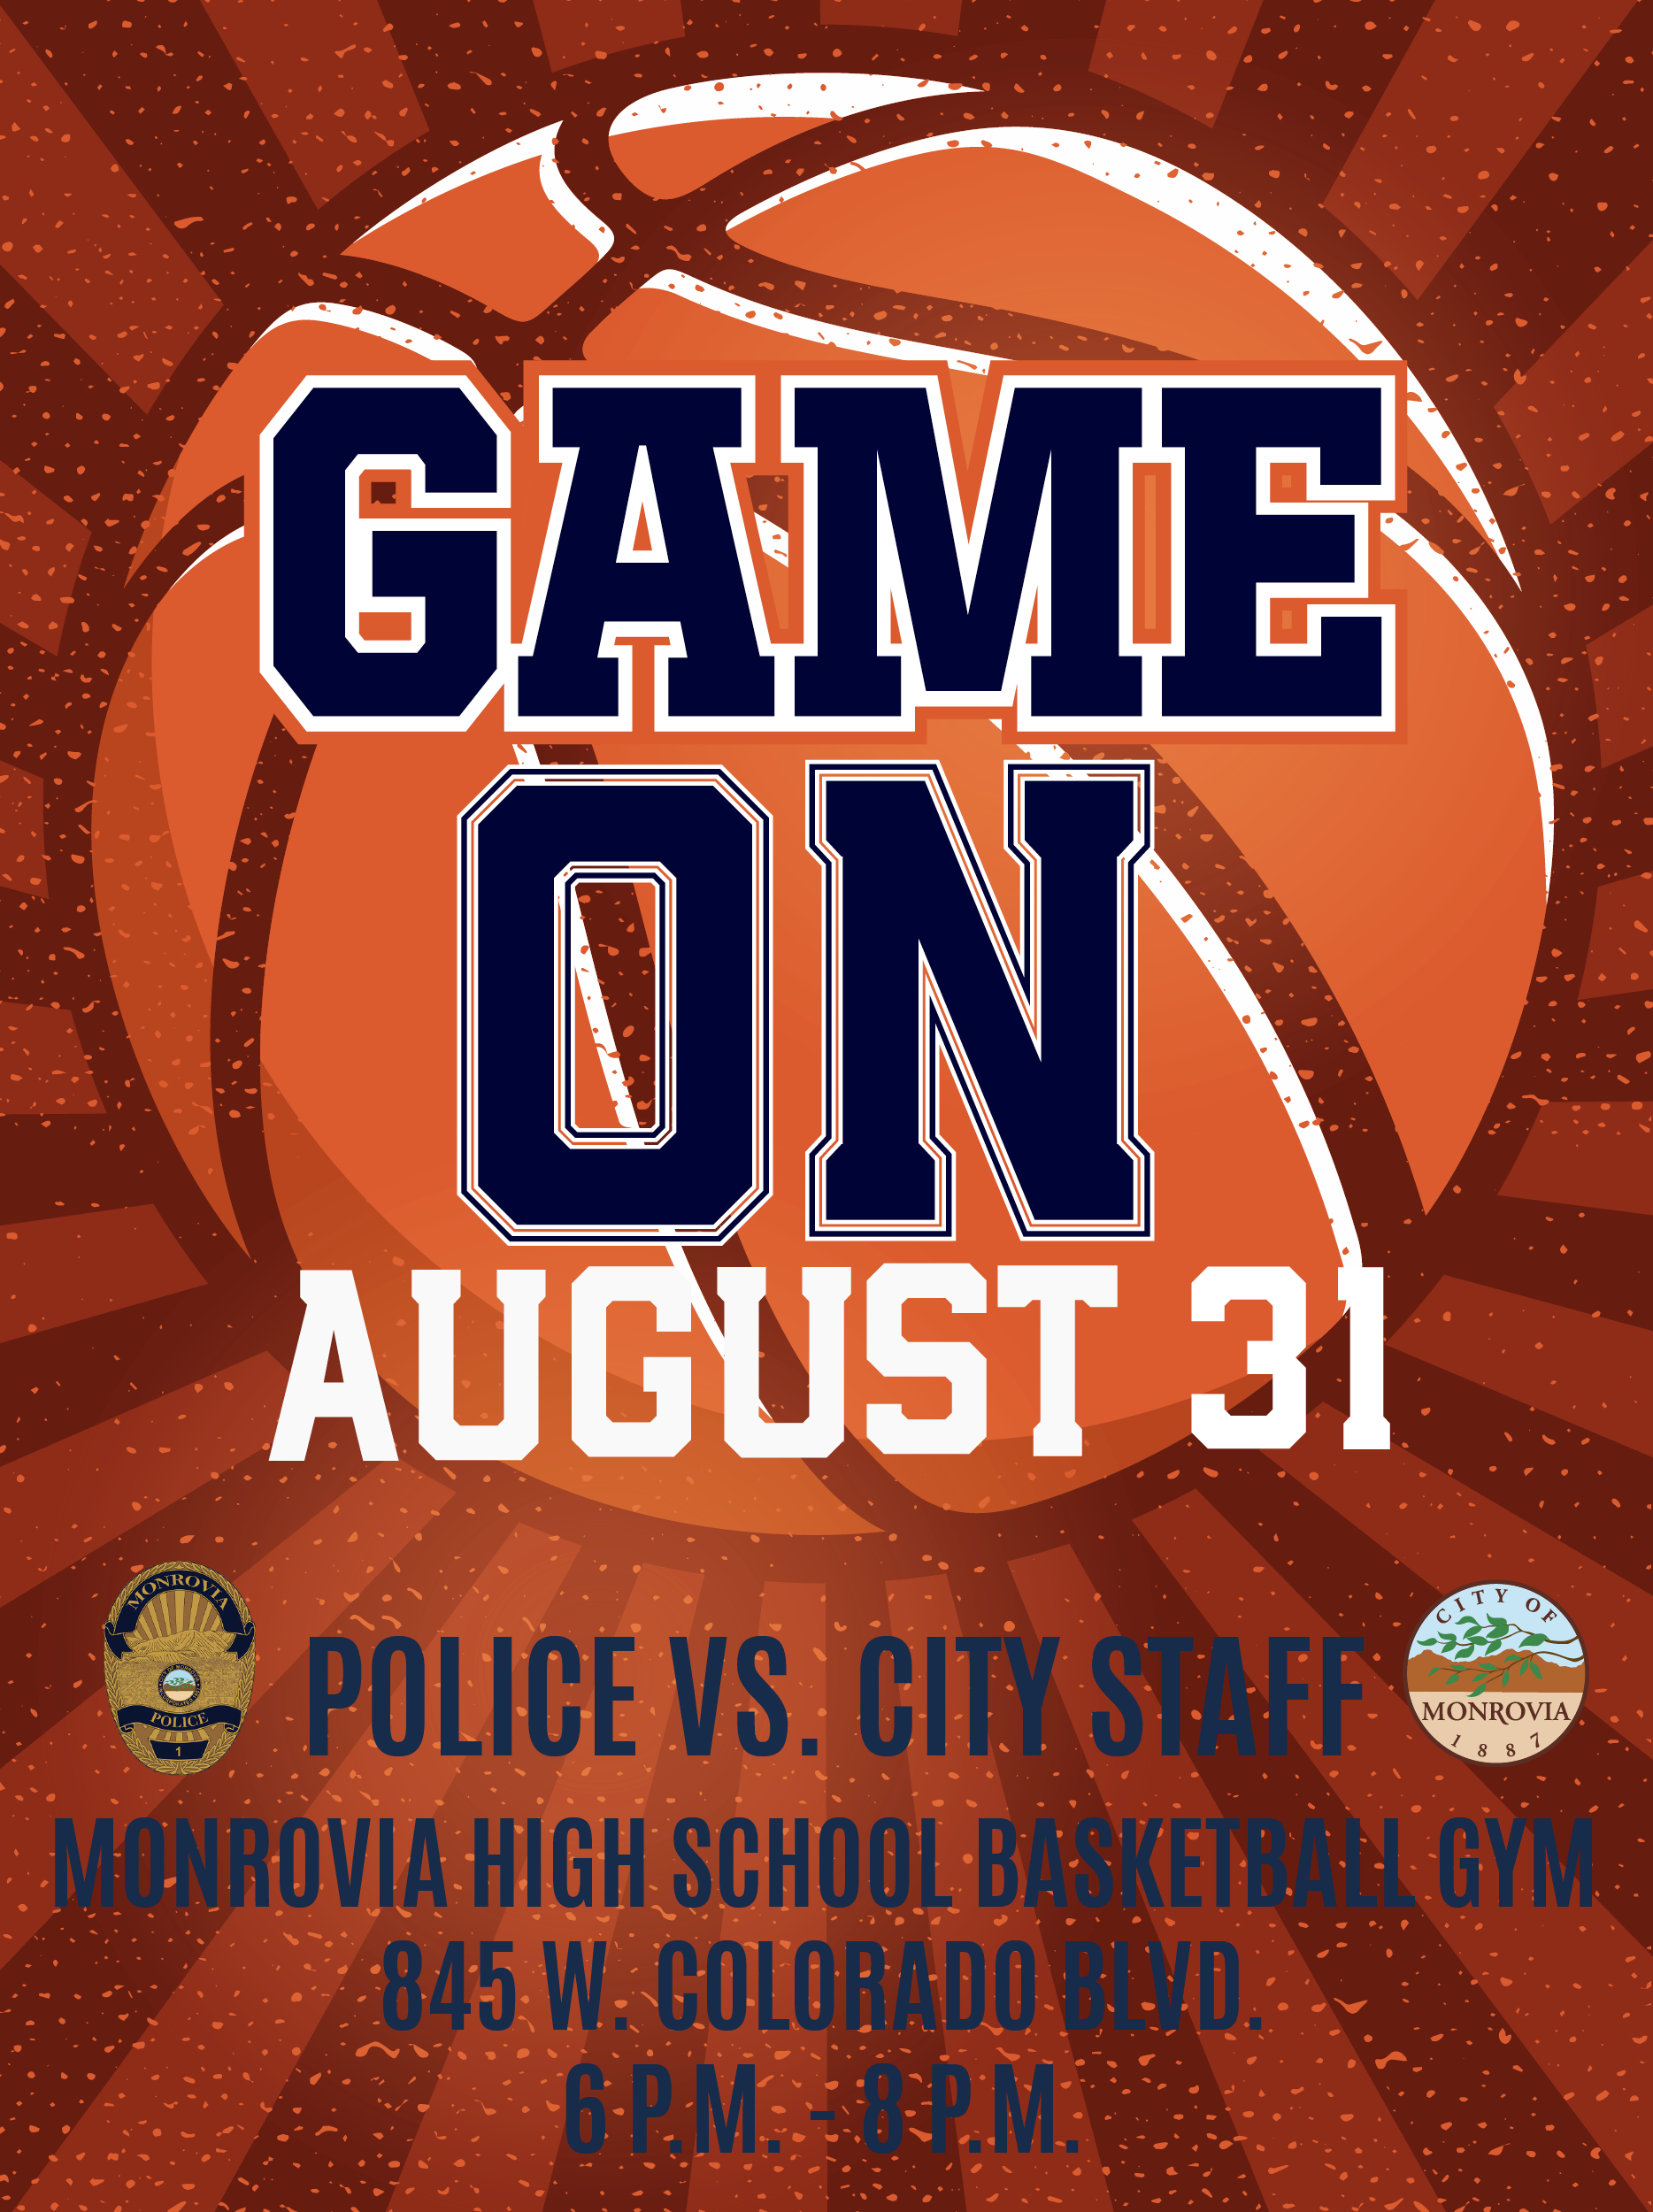 PD v. City Basketball